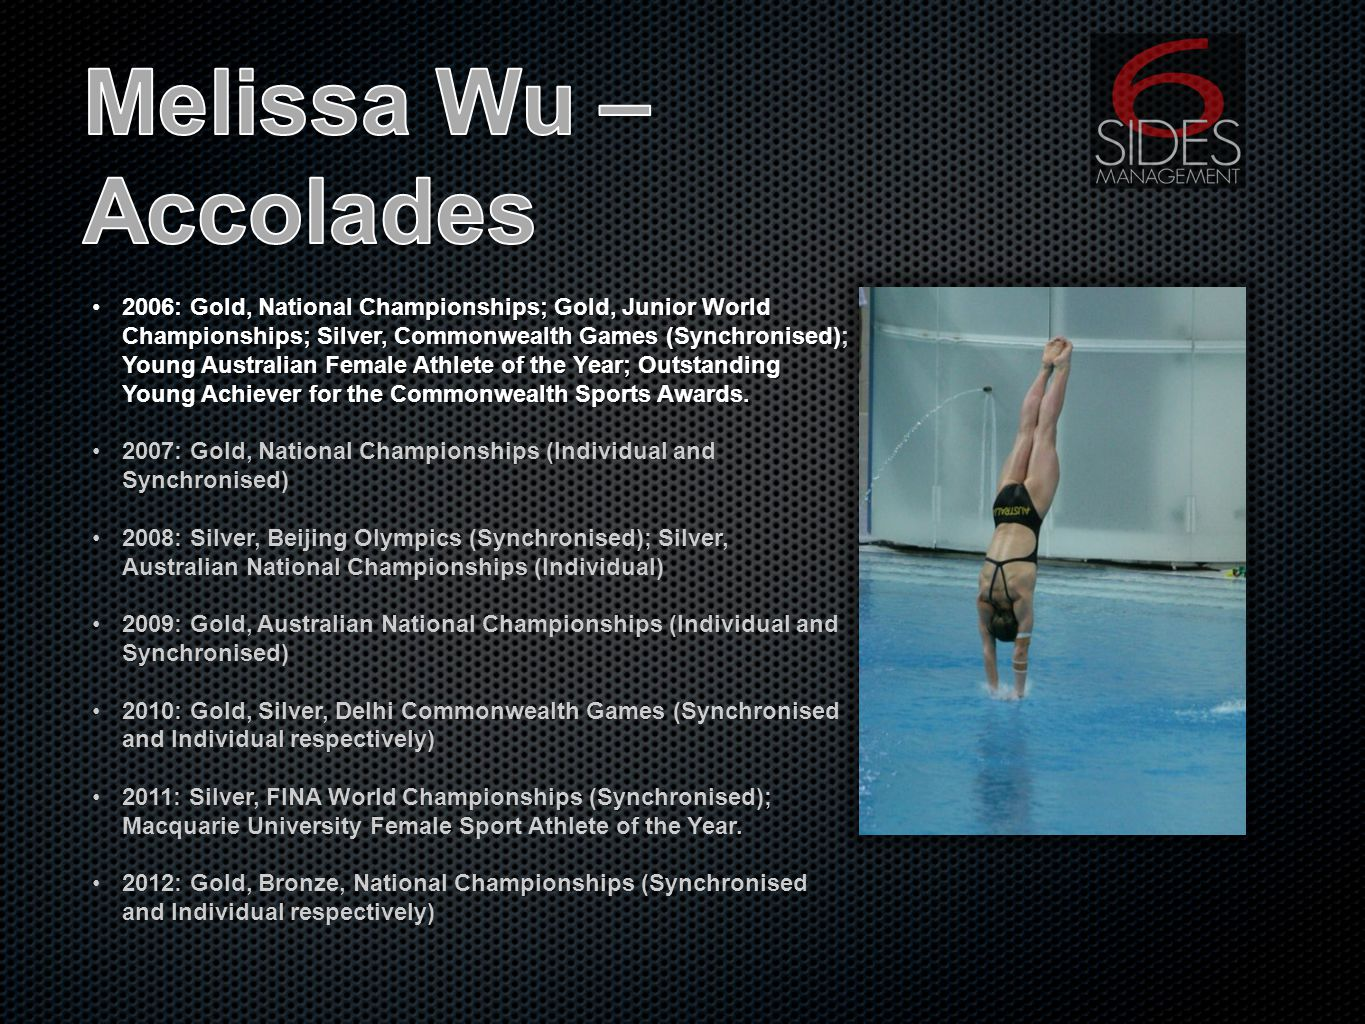 2006: Gold, National Championships; Gold, Junior World Championships; Silver, Commonwealth Games (Synchronised); Young Australian Female Athlete of the Year; Outstanding Young Achiever for the Commonwealth Sports Awards.2006: Gold, National Championships; Gold, Junior World Championships; Silver, Commonwealth Games (Synchronised); Young Australian Female Athlete of the Year; Outstanding Young Achiever for the Commonwealth Sports Awards.